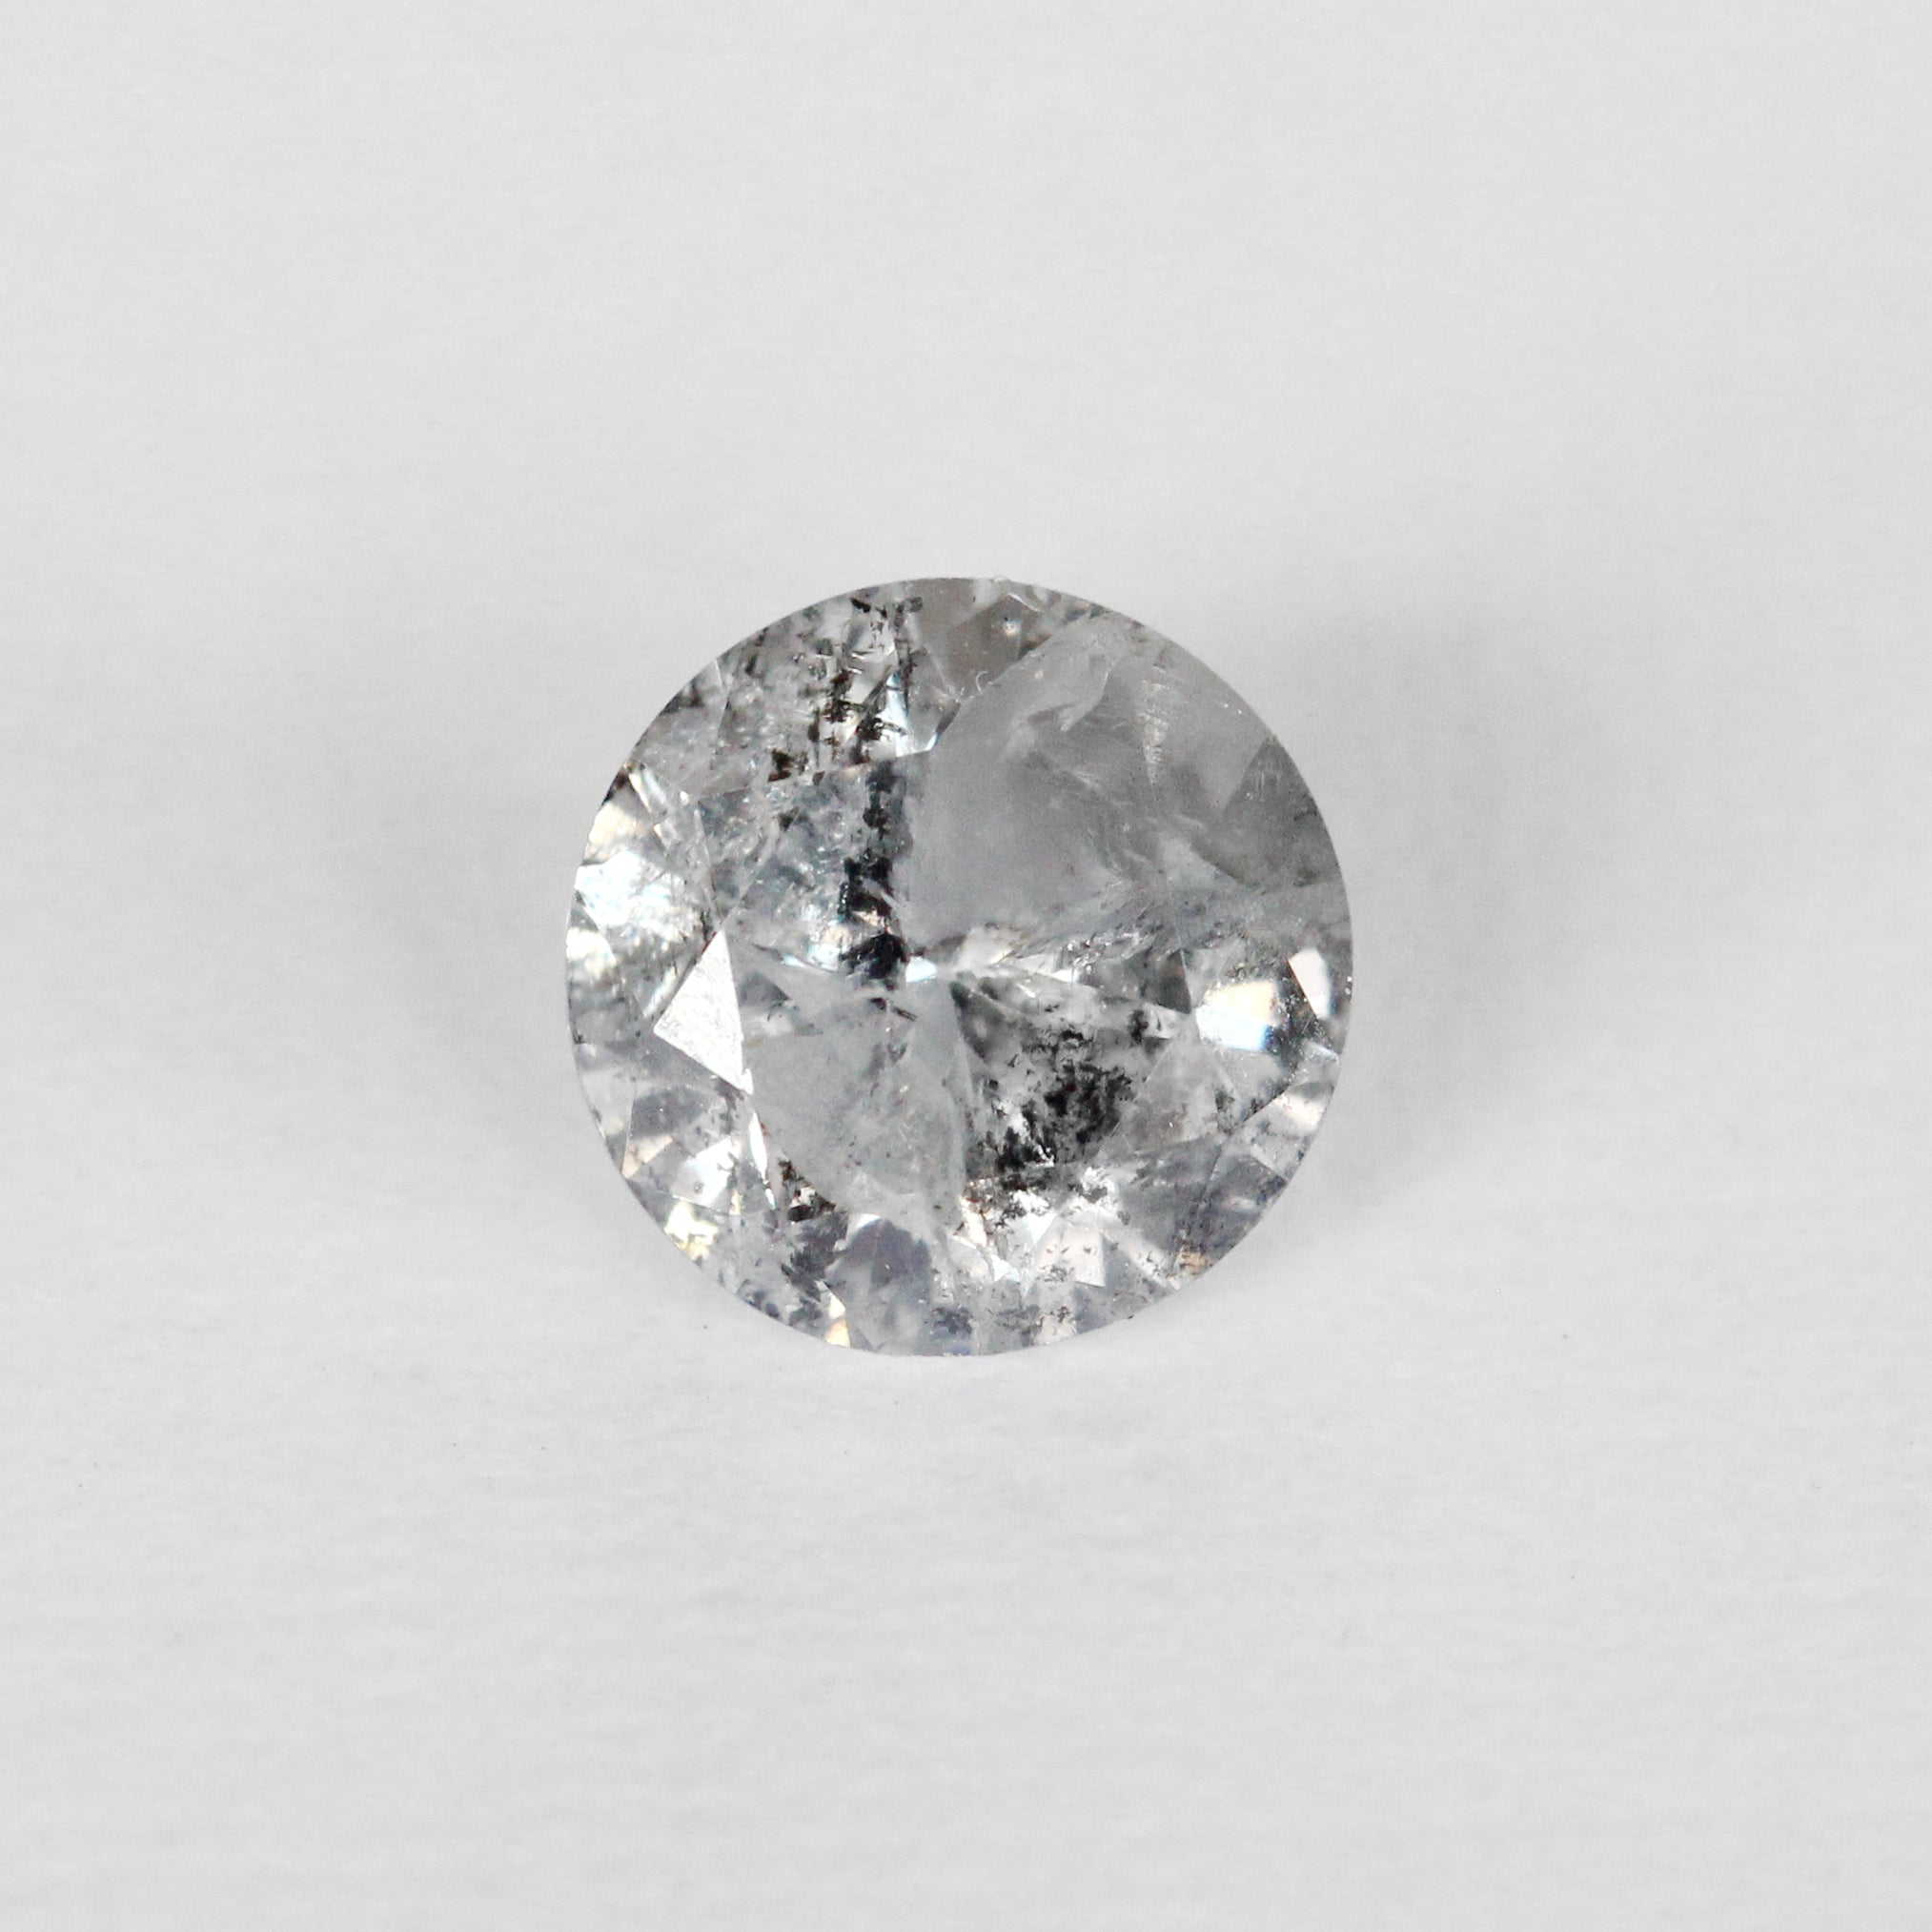 .90 carat natural brilliant round celestial diamond for custom work - inventory code MGBR90 - Celestial Diamonds ® by Midwinter Co.